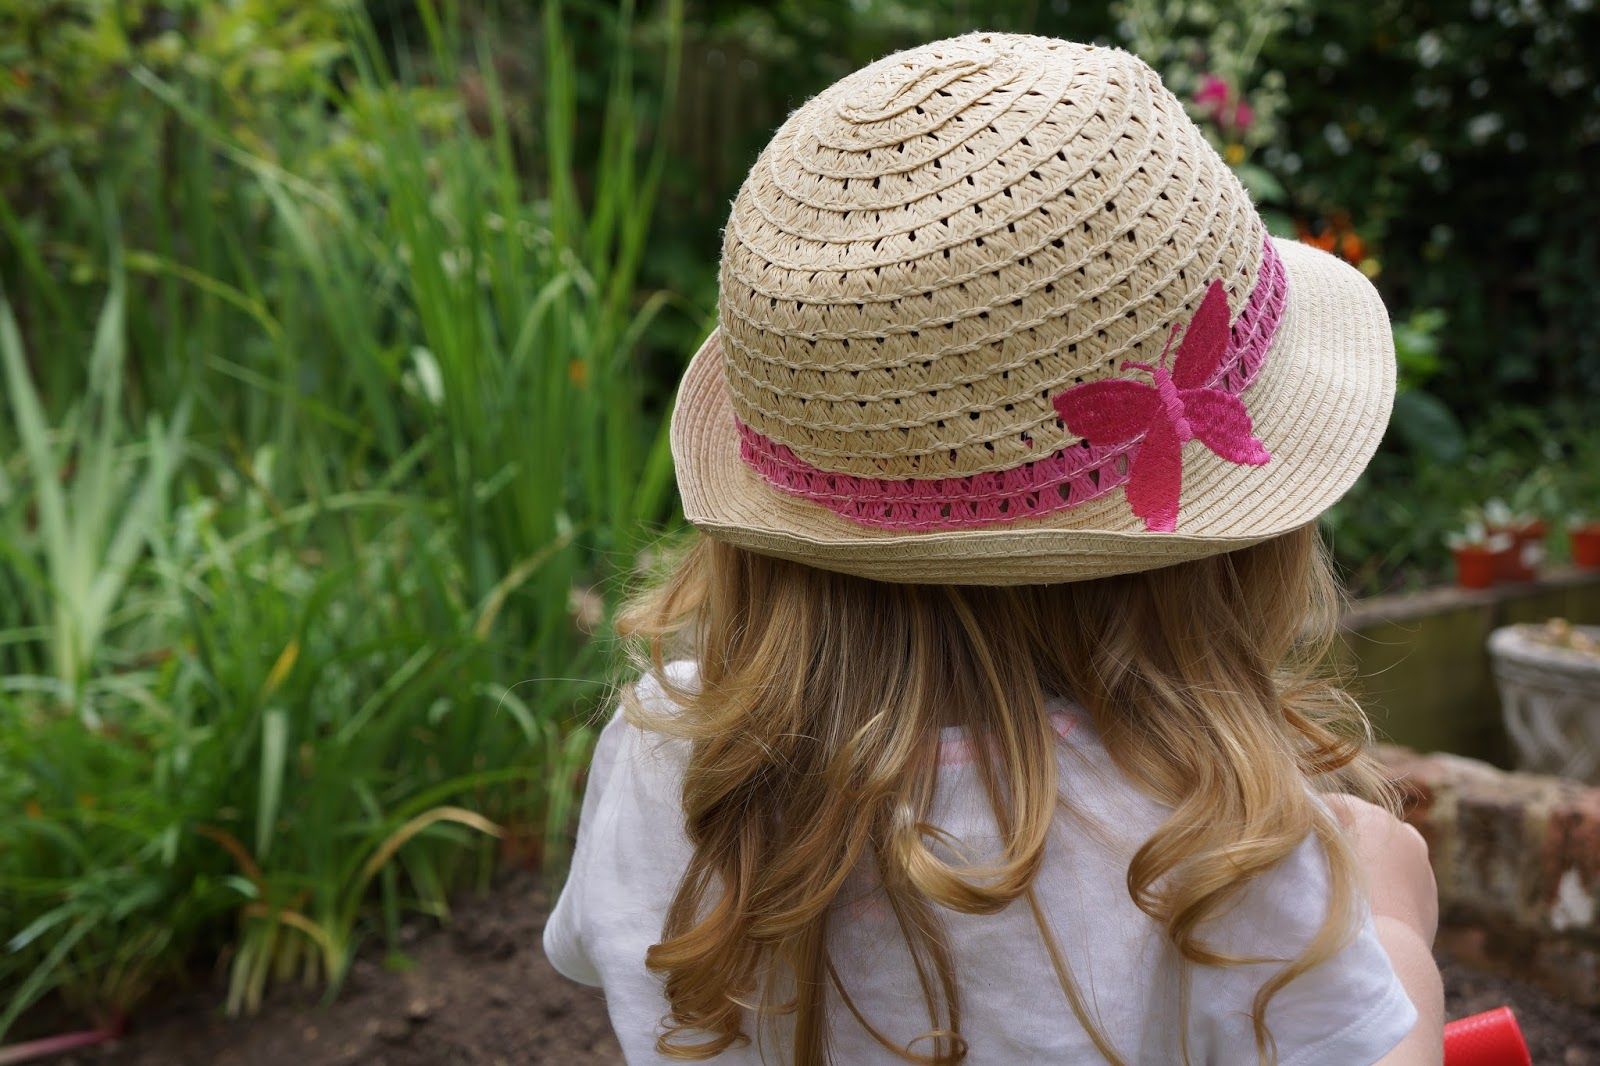 straw hat with a pink woven butterfly on it